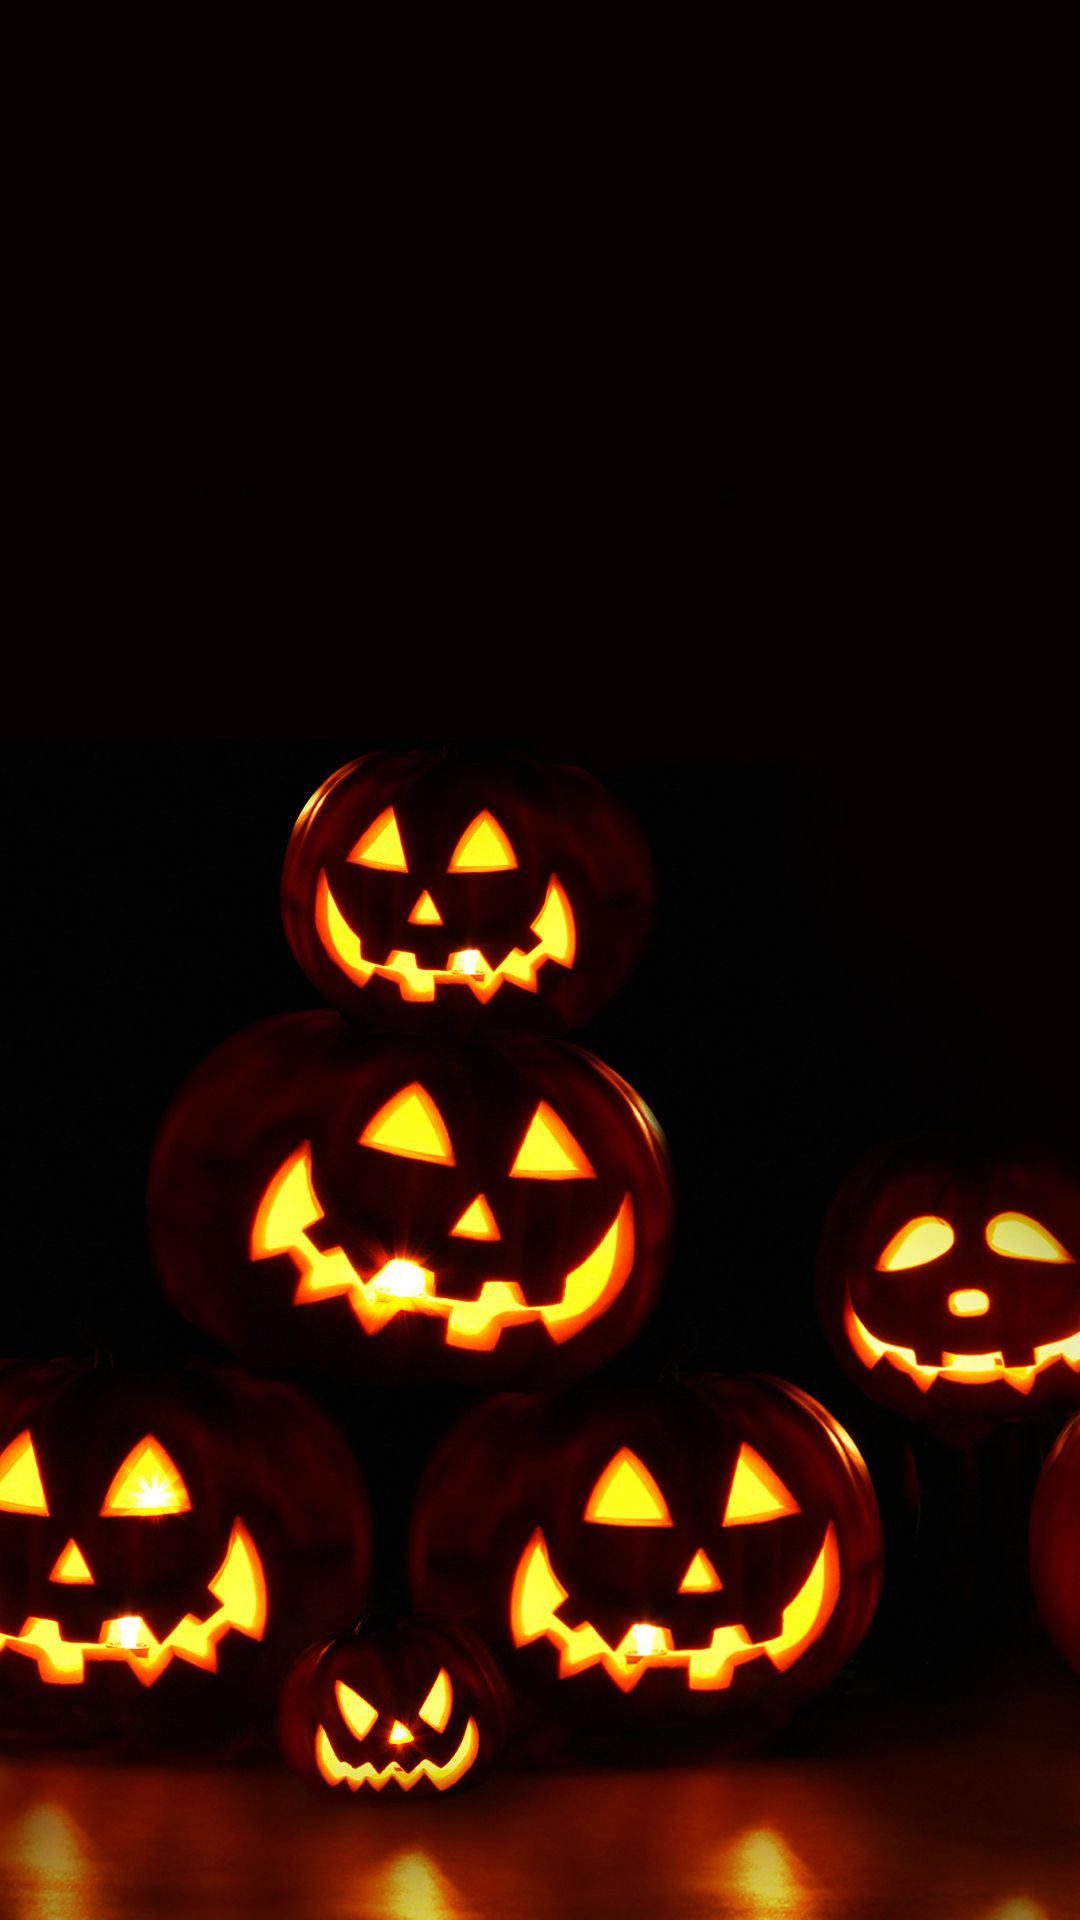 1080x1920 Scary Pumpkins Halloween Android Wallpaper free download